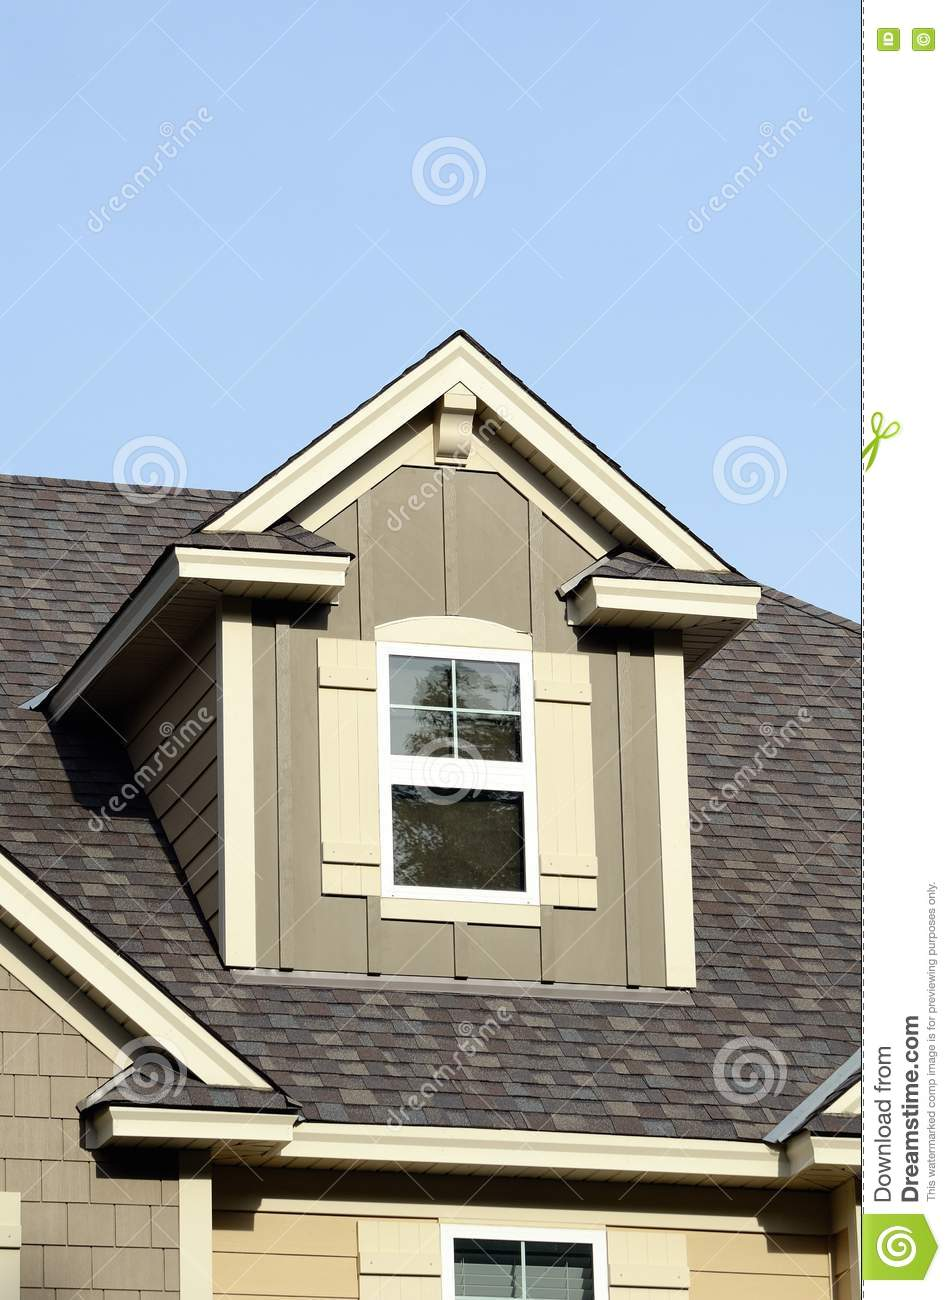 Gable dormers on residential home stock photo image for Houses with gable roofs